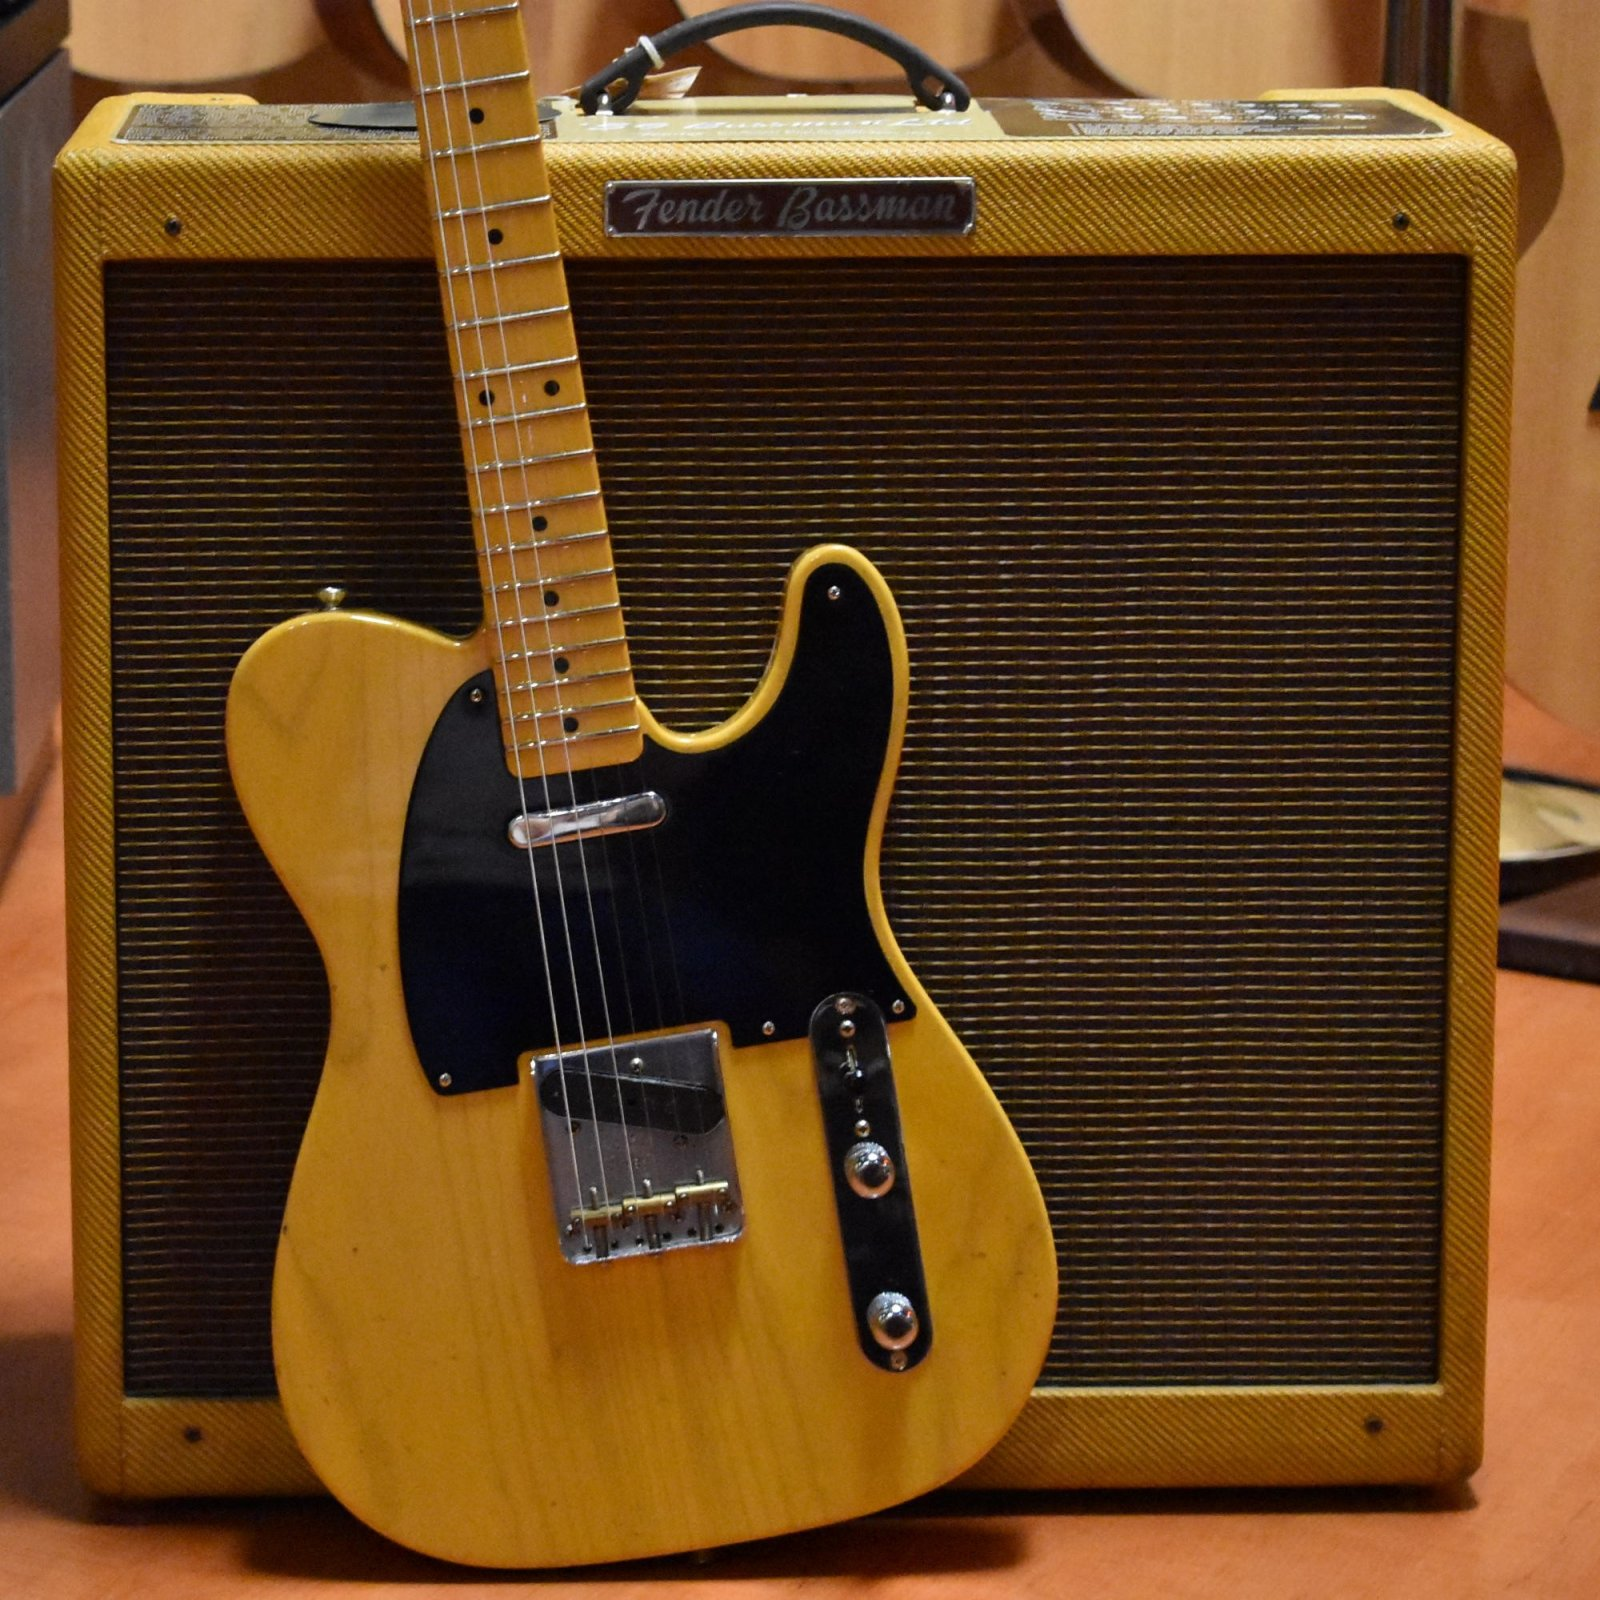 Fender Custom Shop 1952 Telecaster Journeyman